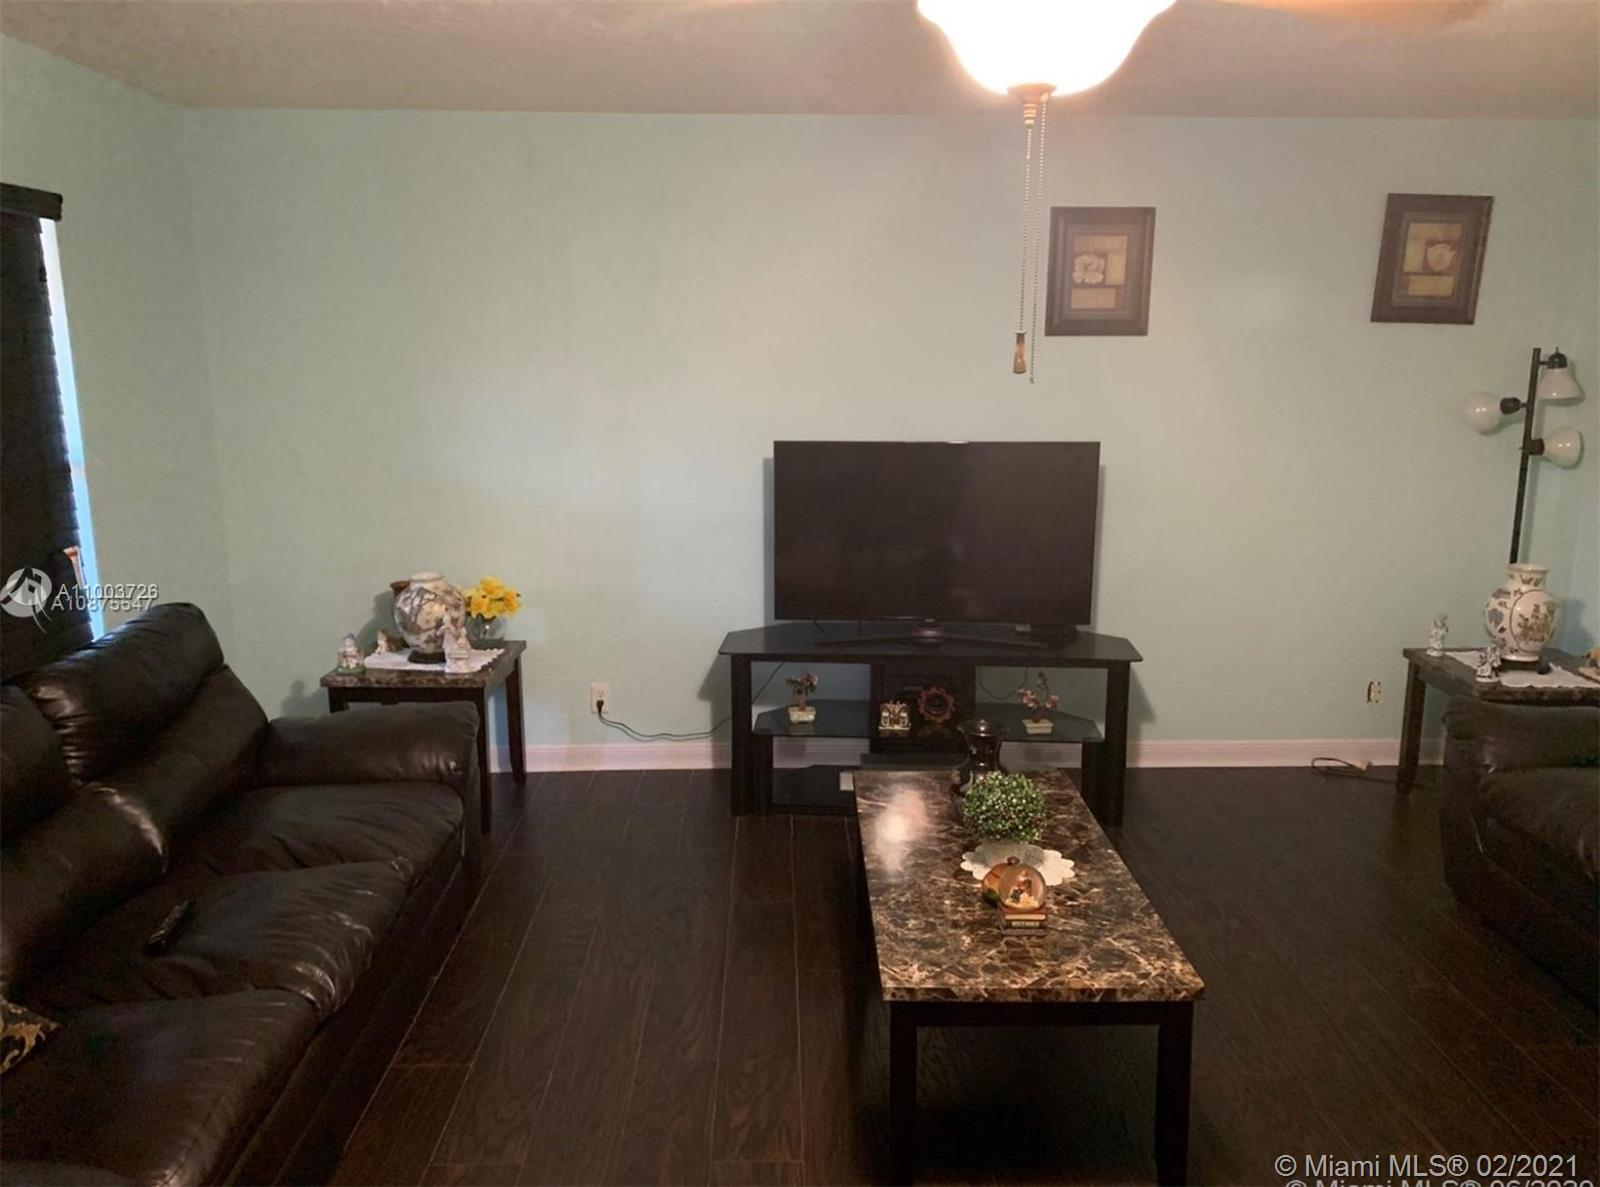 Beautifully renovated and well kept 2/2. Very bright unit with tile and laminate floors and renovated bathrooms and kitchen. Great location near turnpike, Florida Medical Center, near to Publix and CVS. MANY GREAT AMENITIES (pool, clubhouse, fitness center and common areas)